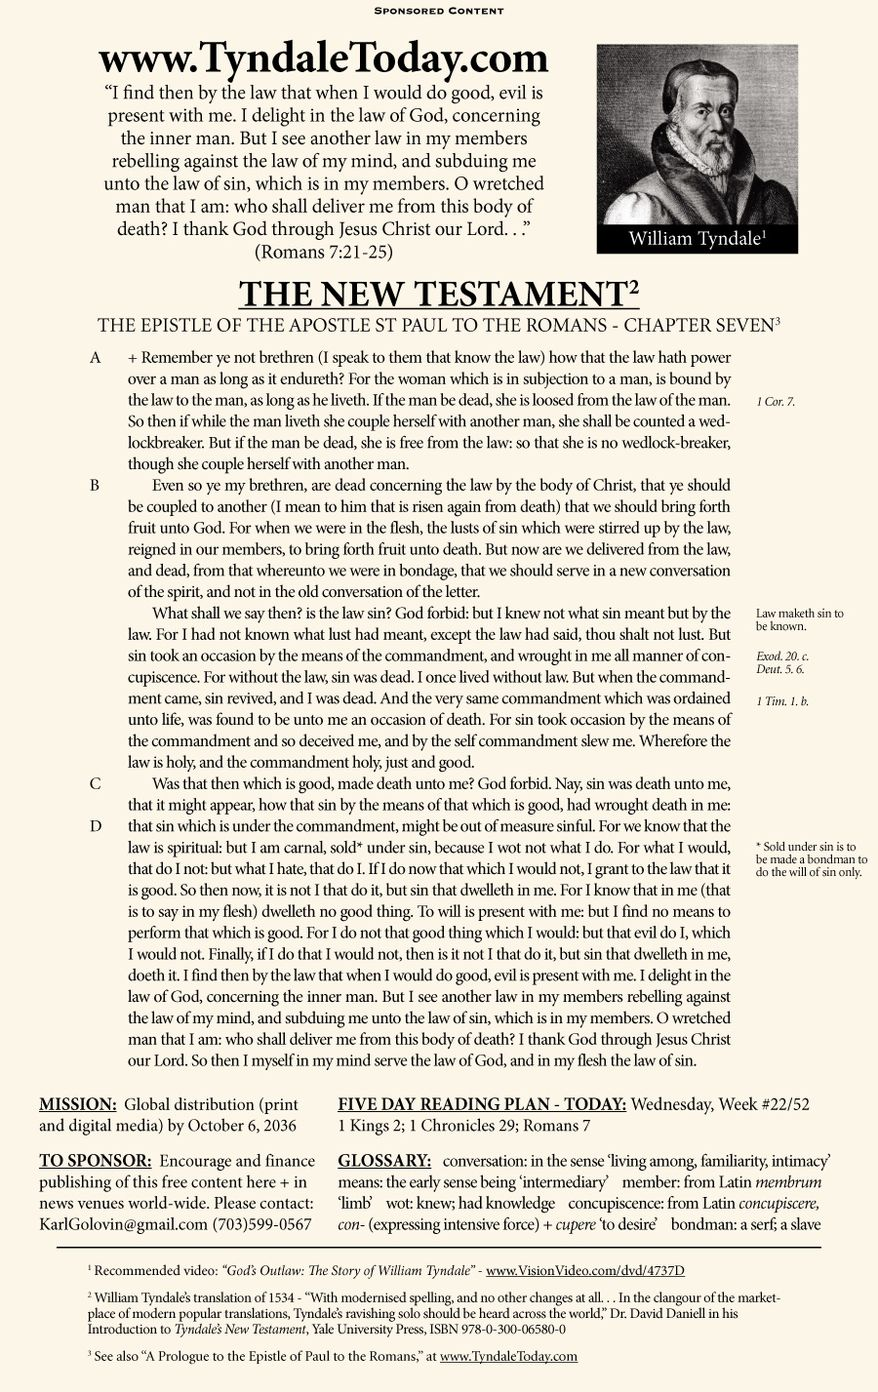 A daily reading of William Tyndale's 1534 translation of The New Testament from Tyndale Today. (Sponsored content May 31, 2017 in The Washington Times)